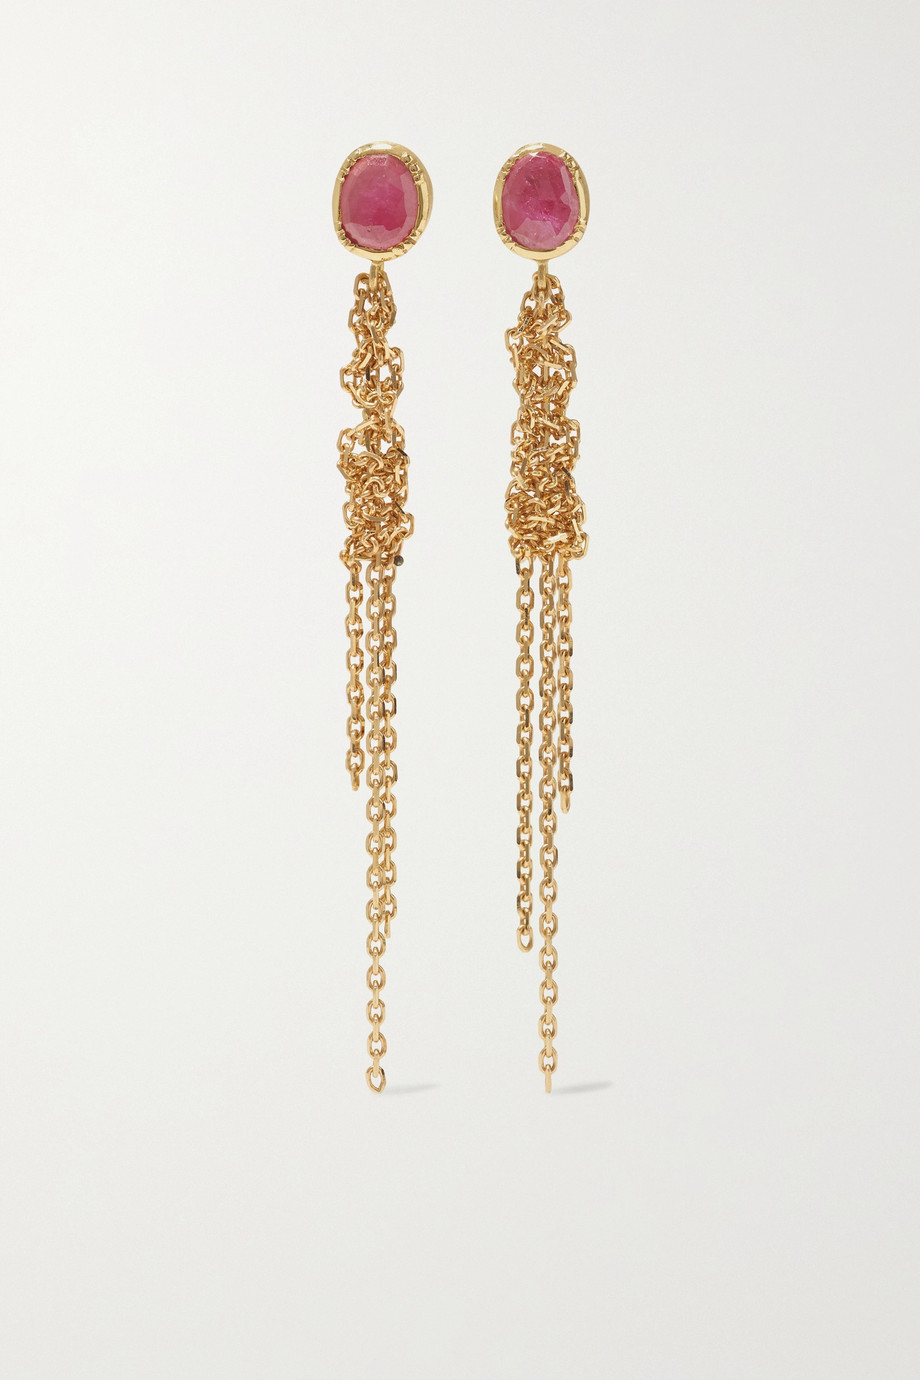 Brooke Gregson Waterfall 18-karat gold sapphire earrings